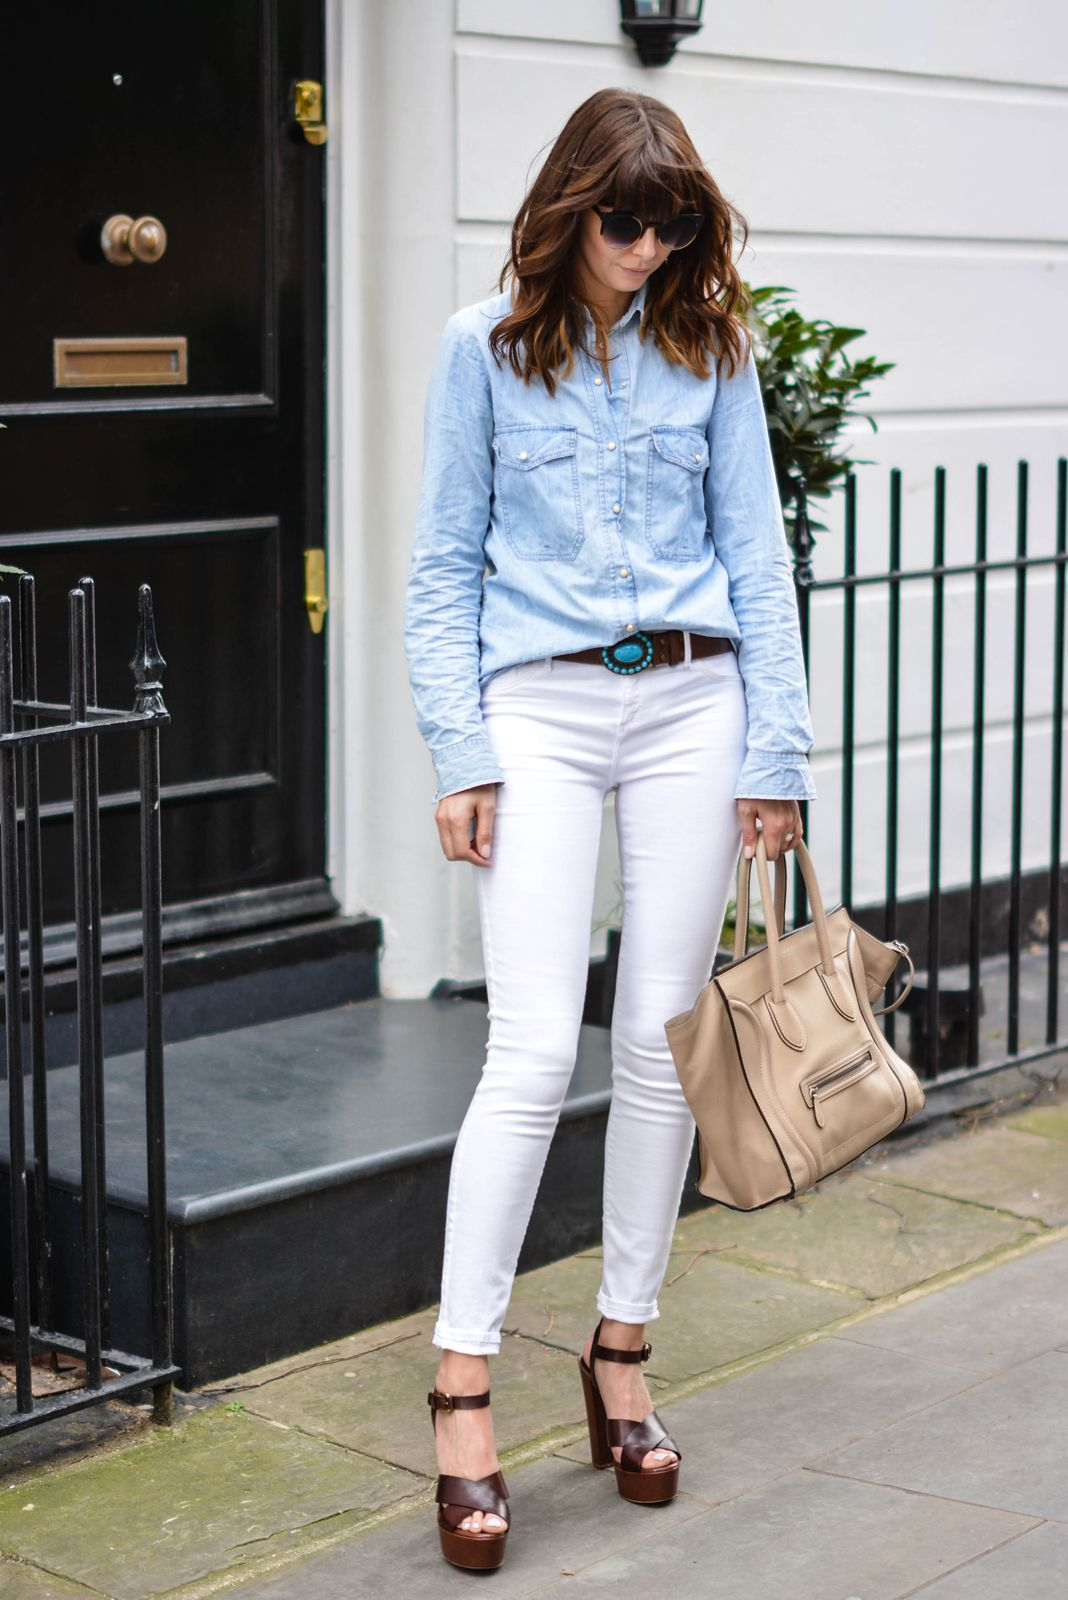 White skinny jeans, denim shirt, turquoise stone & brown leather ...